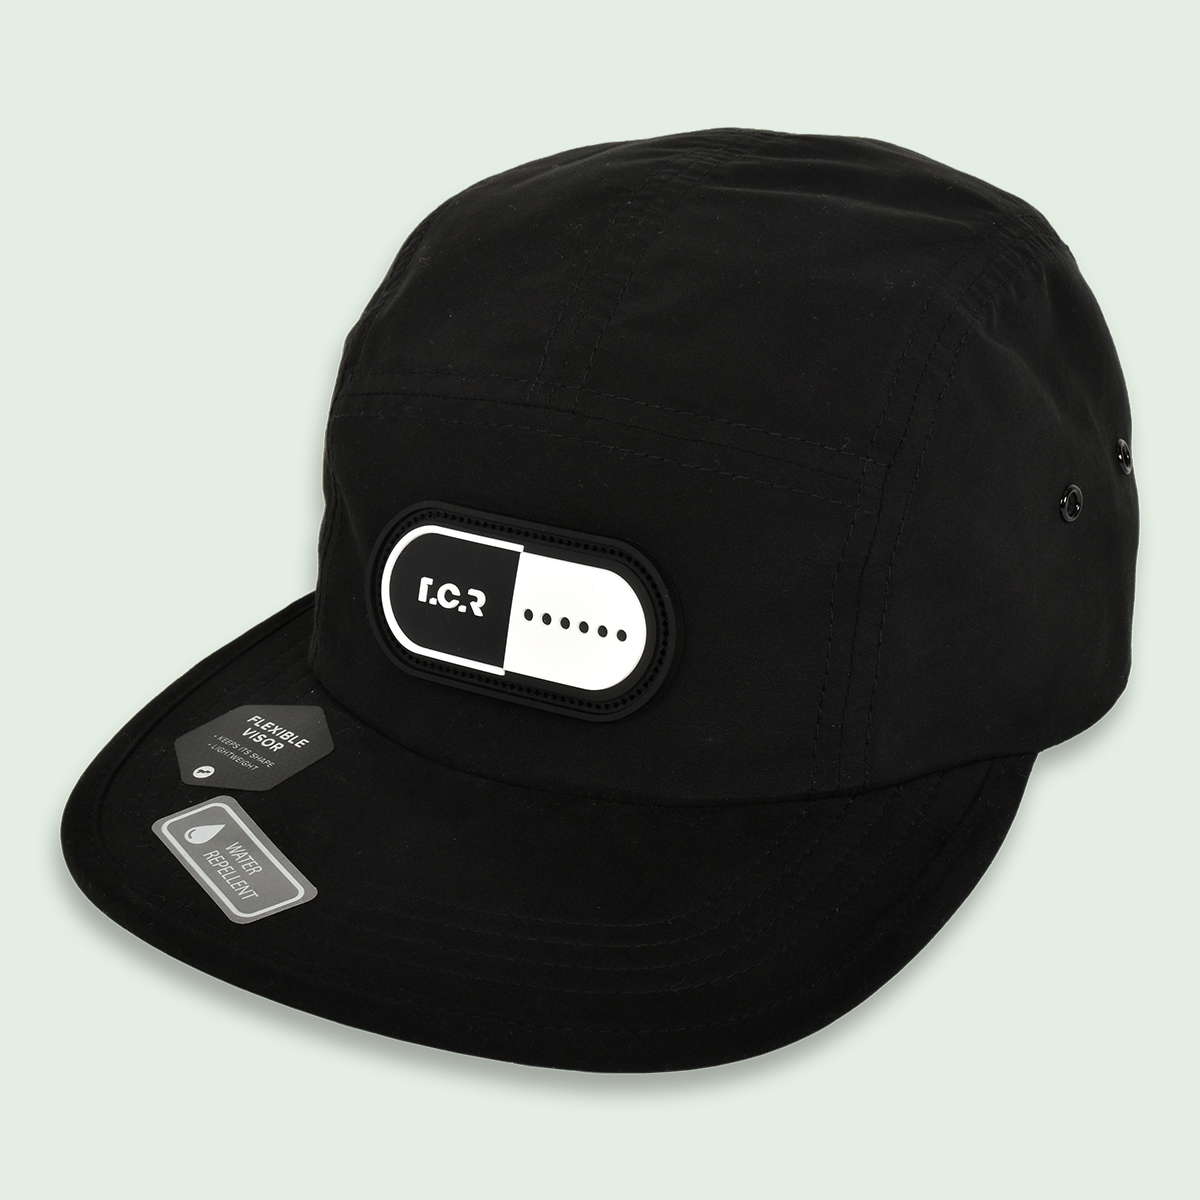 RUBBER CAPSULE WATER REPELLENT 5-PANEL CAP - BLACK